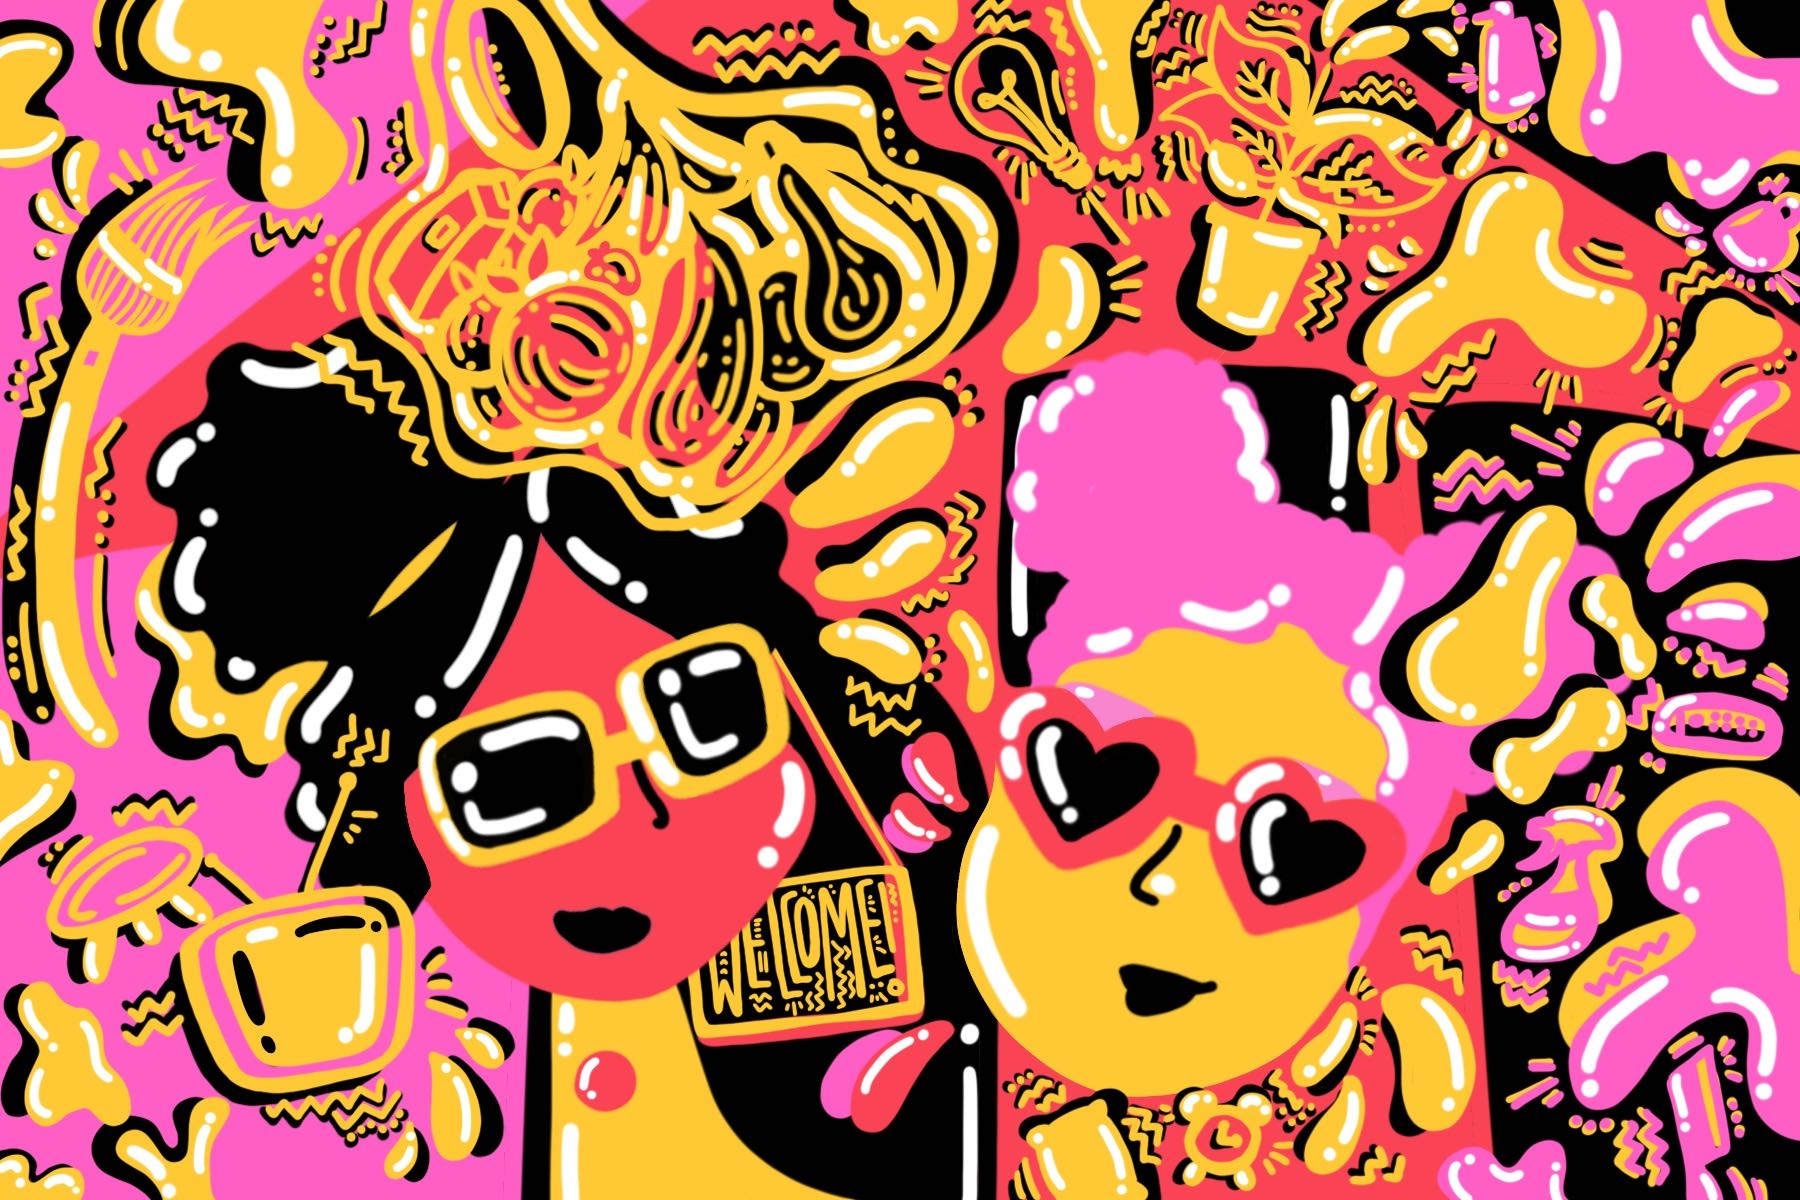 Illustration by Sarah Yu of two faces in sunglasses in an article about living with your best friend